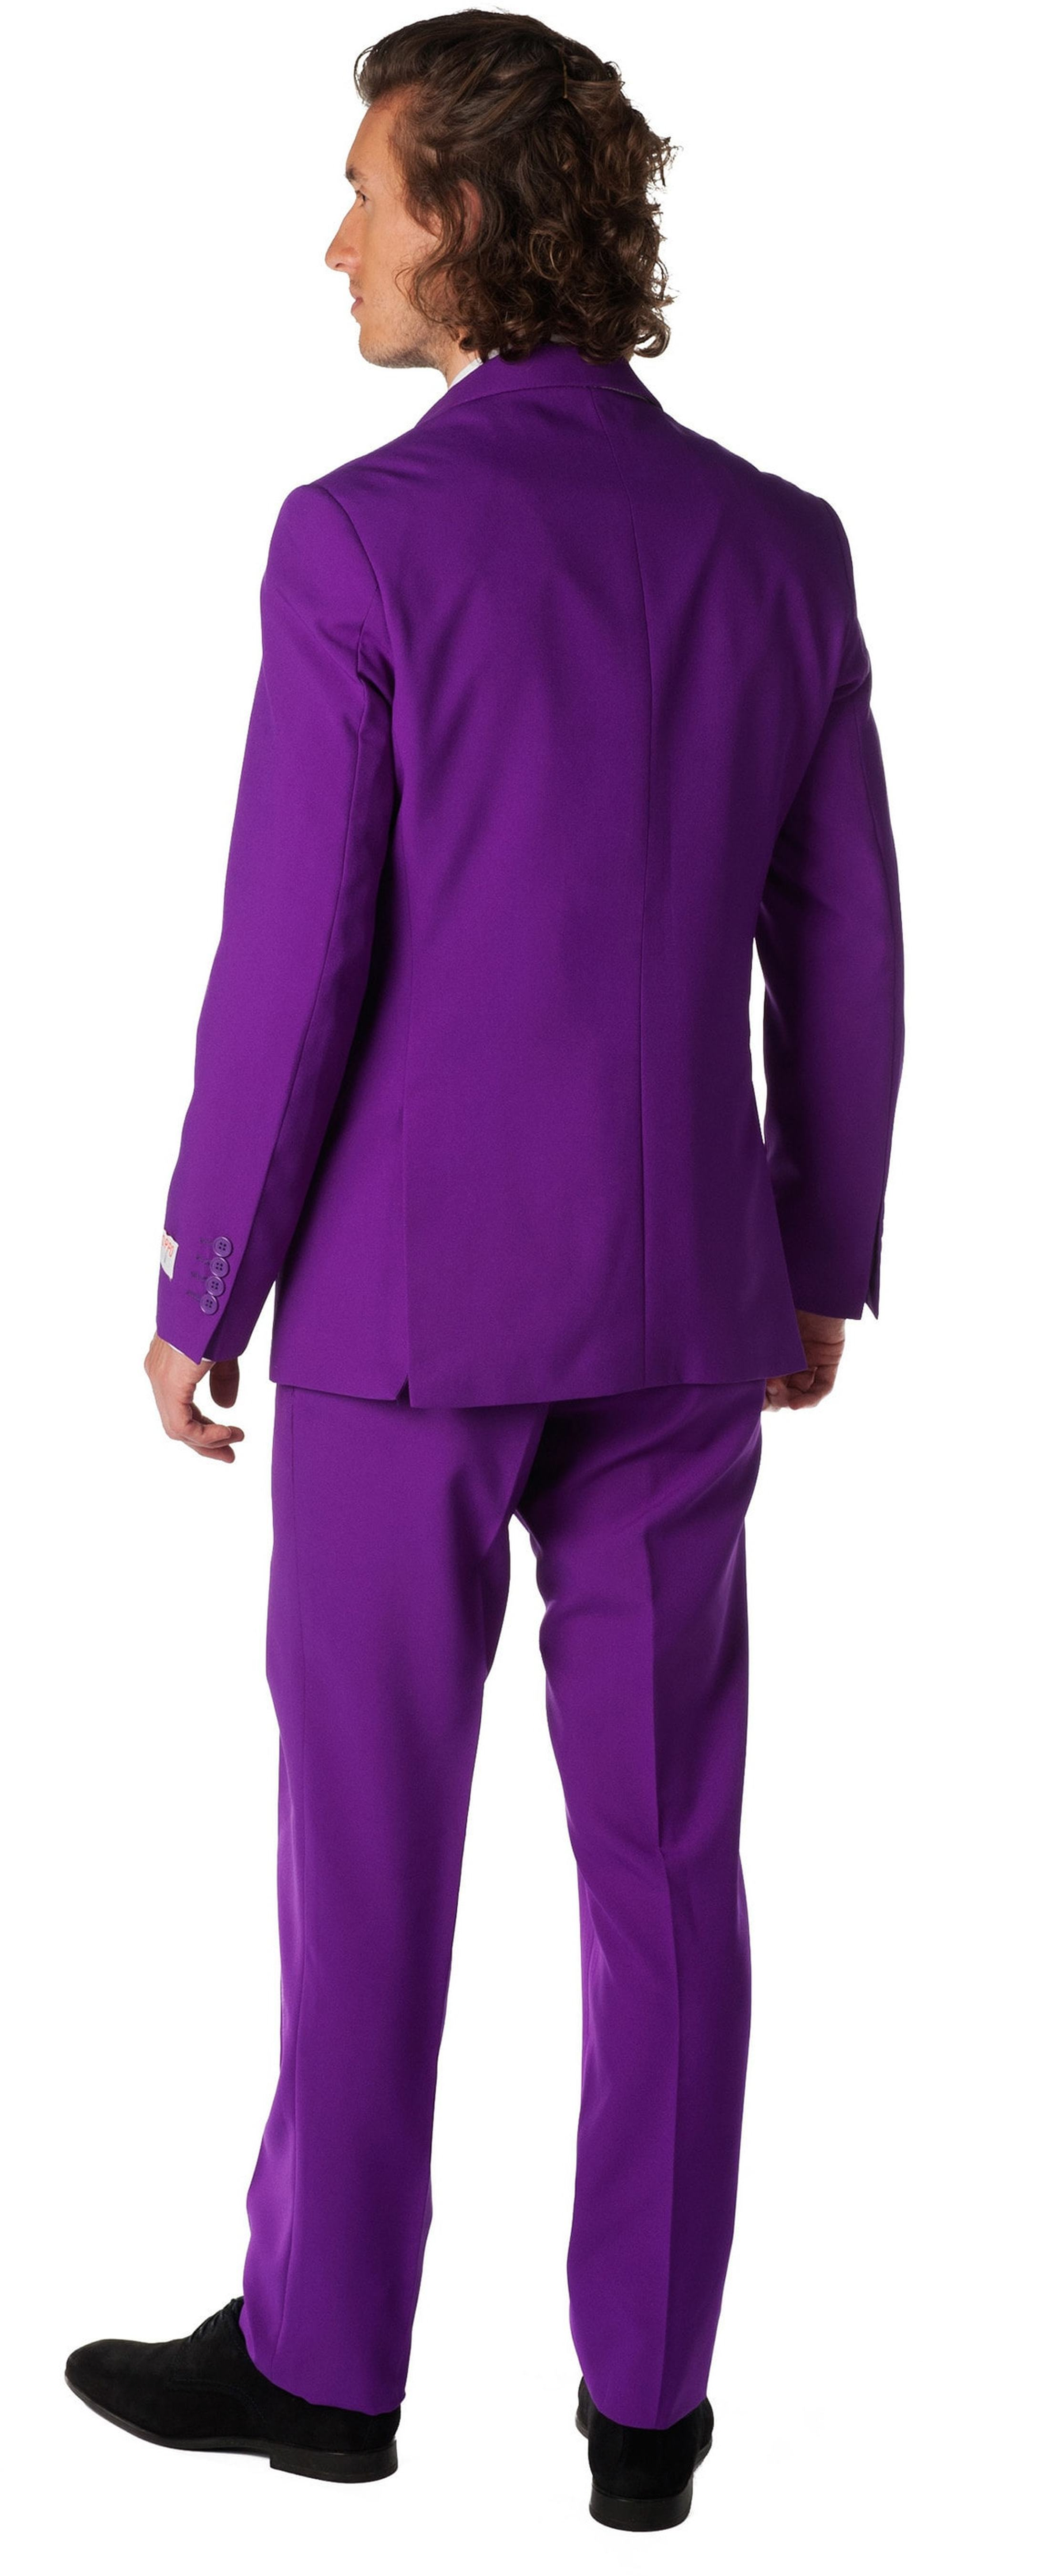 OppoSuits Purple Prince Suit foto 1